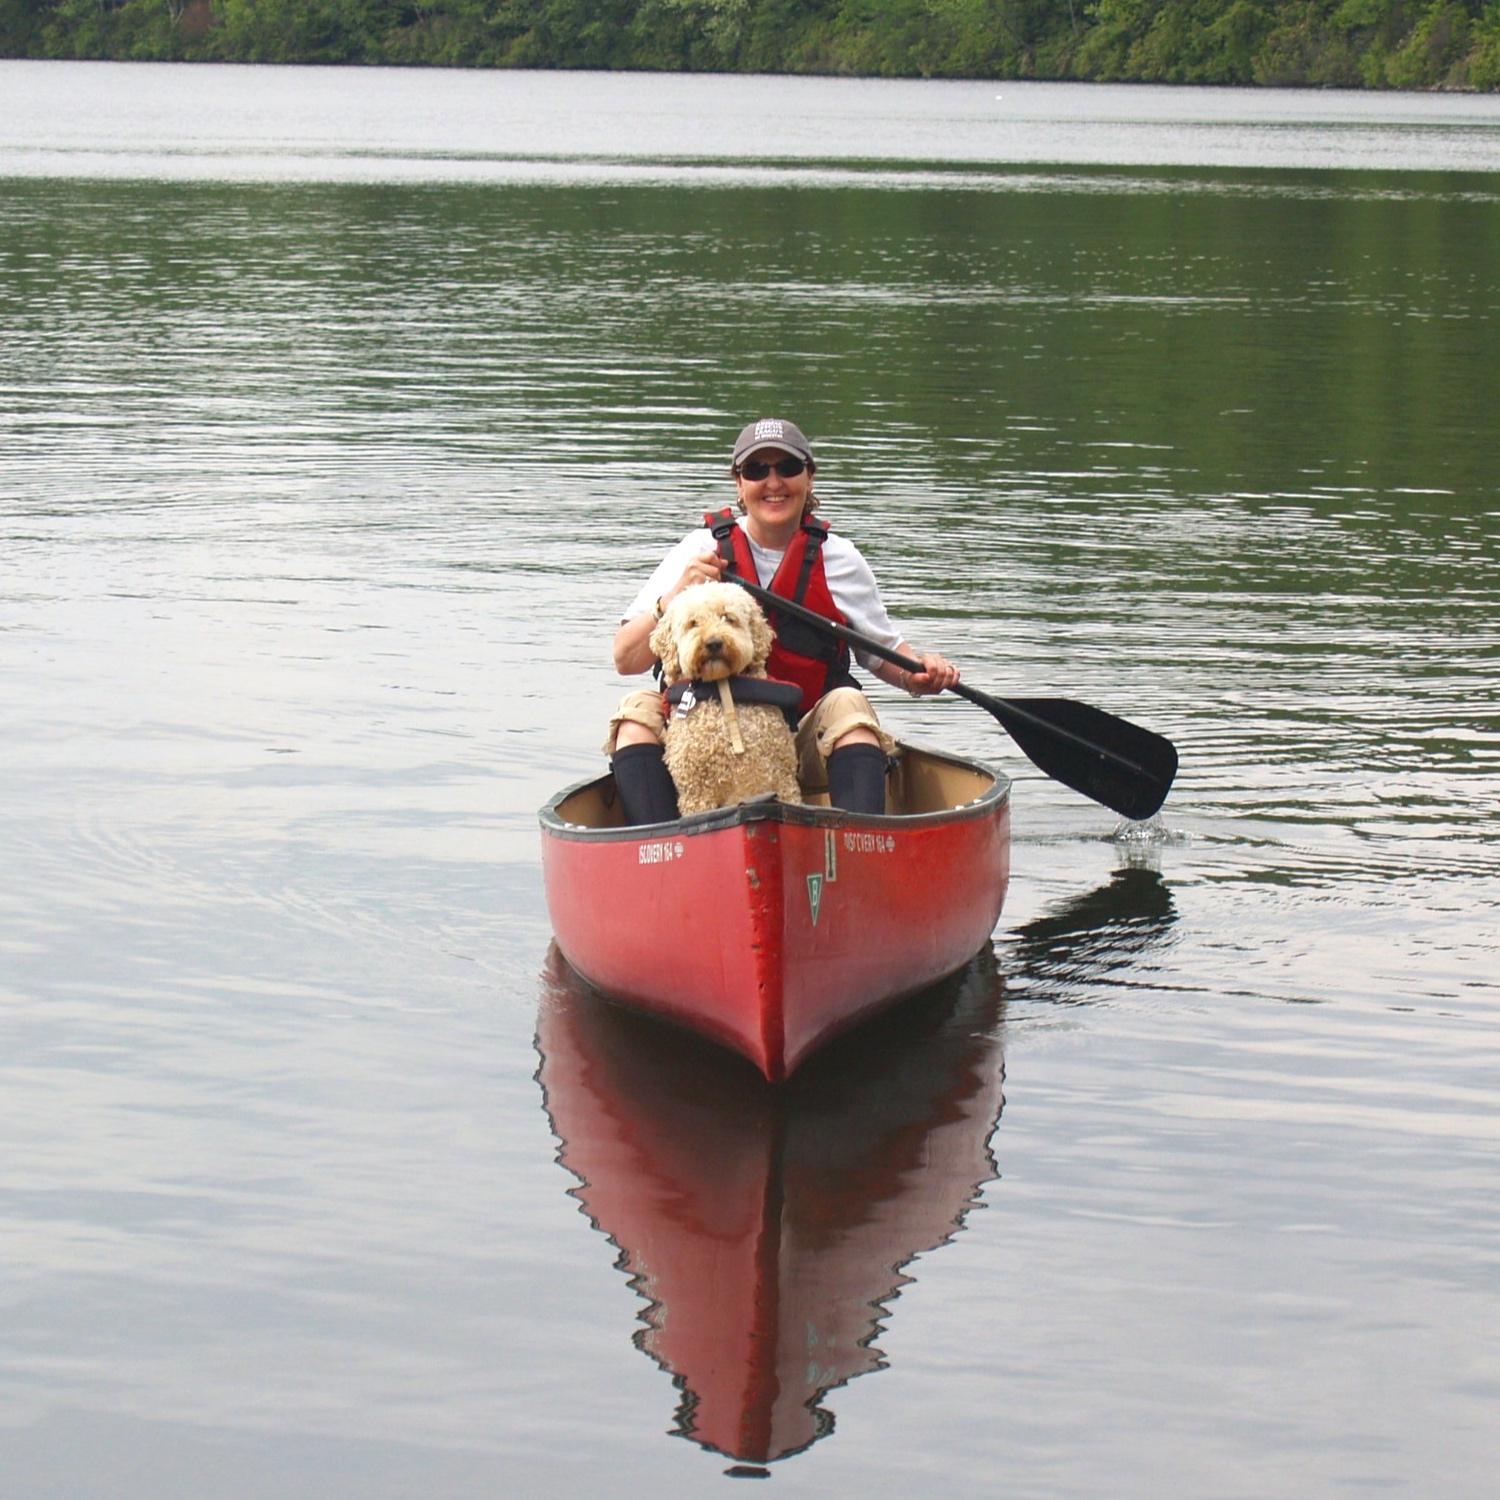 Canoeing - Dogs love the new experience of traveling by canoe. They get to smell all kinds of new things and you will have a richer experience just by observing their senses at work. Learn how to safely condition your dog to enter and exit the canoe and maintain balance. Life jackets will be provided for both humans and dogs.